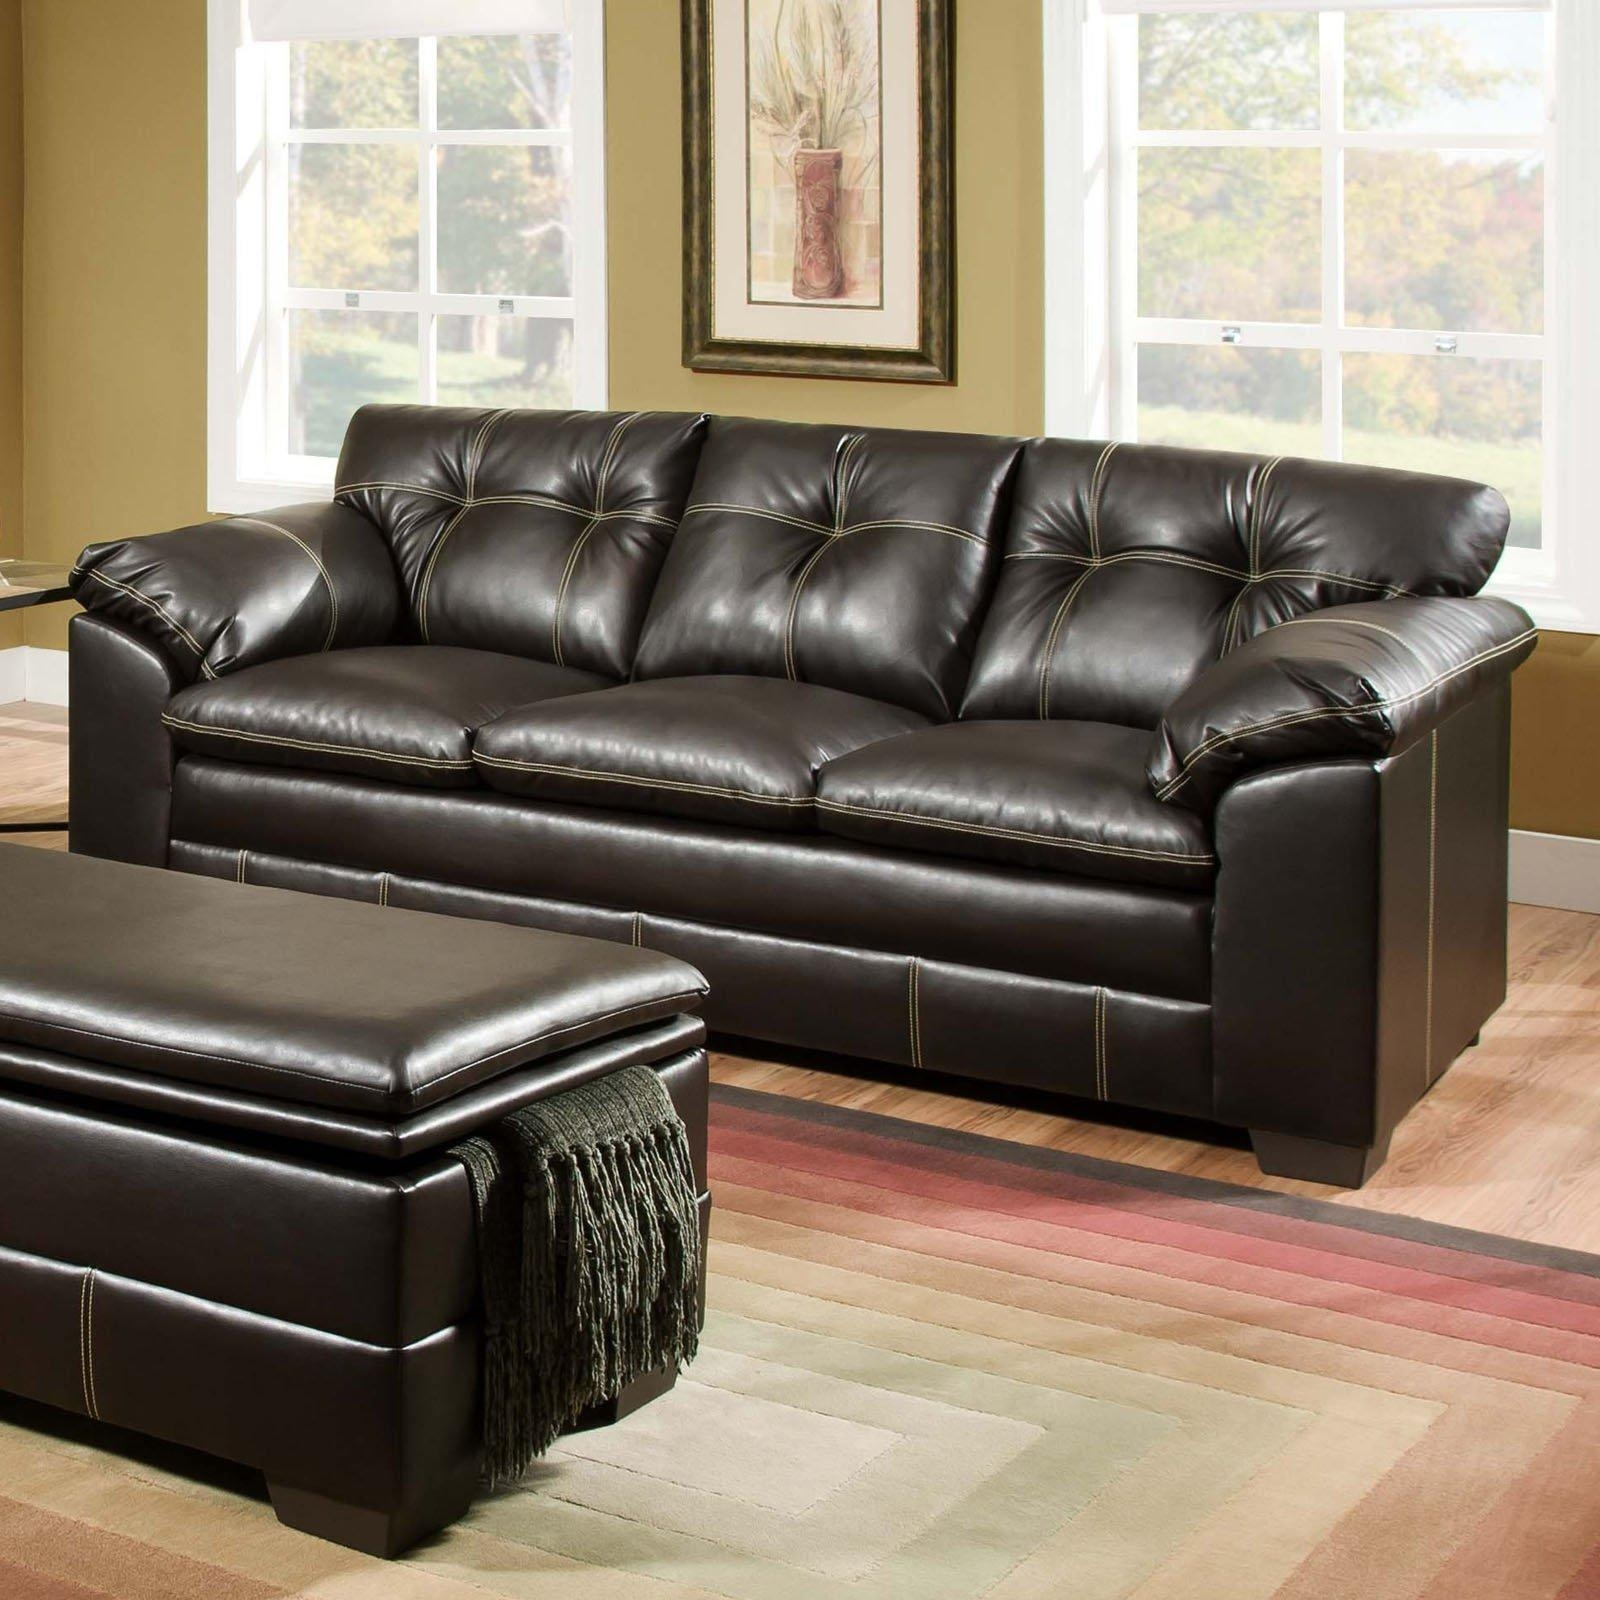 Simmons Upholstery Premier Bonded Leather Sofa | Hayneedle In Simmons Bonded Leather Sofas (Image 16 of 20)